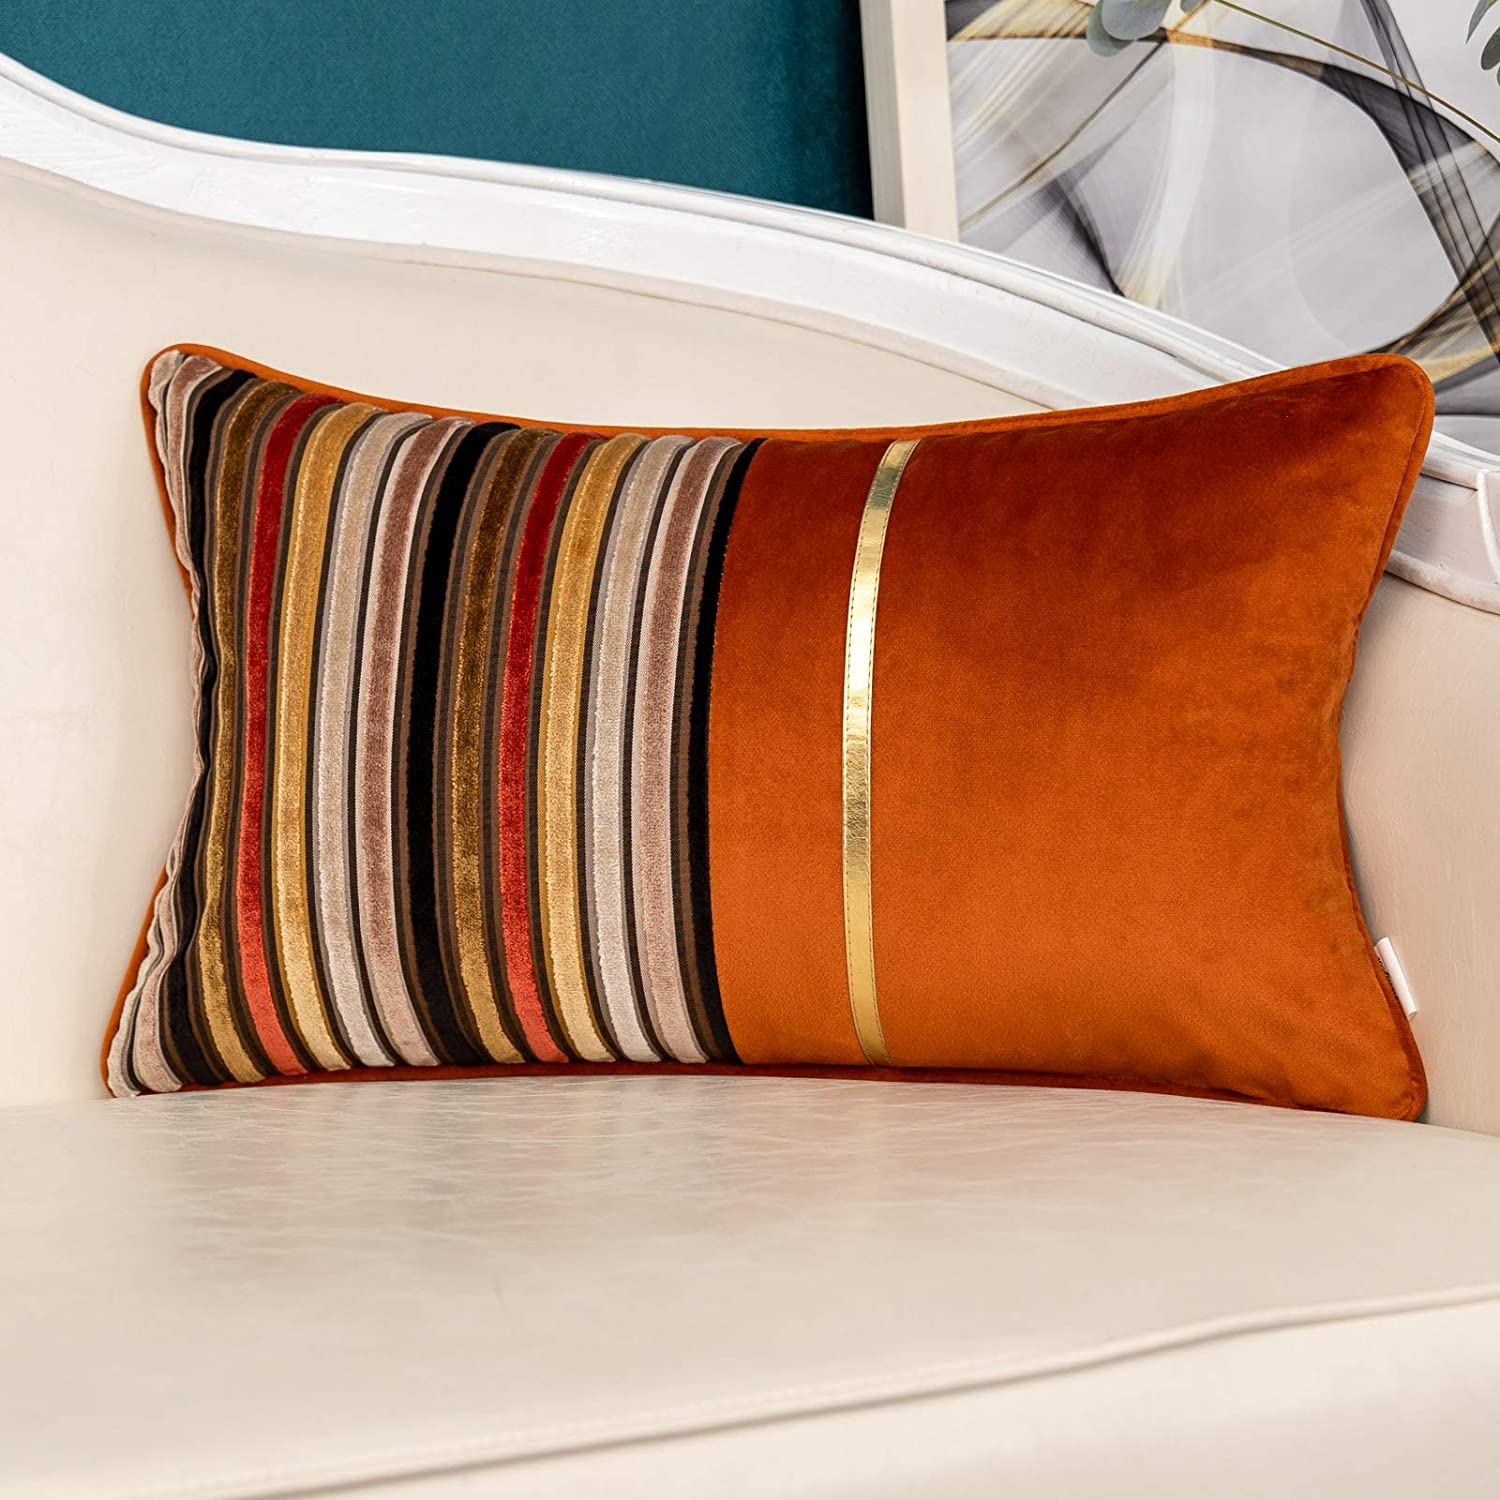 Yangest Burnt Orange Striped Patchwork Velvet Lumbar Throw Pillow Cover Gold Leather Cushion Case Modern Zippered Oblong Pillowcase for Sofa Couch Bedroom Living Room Home Decoration, 12x20 Inch